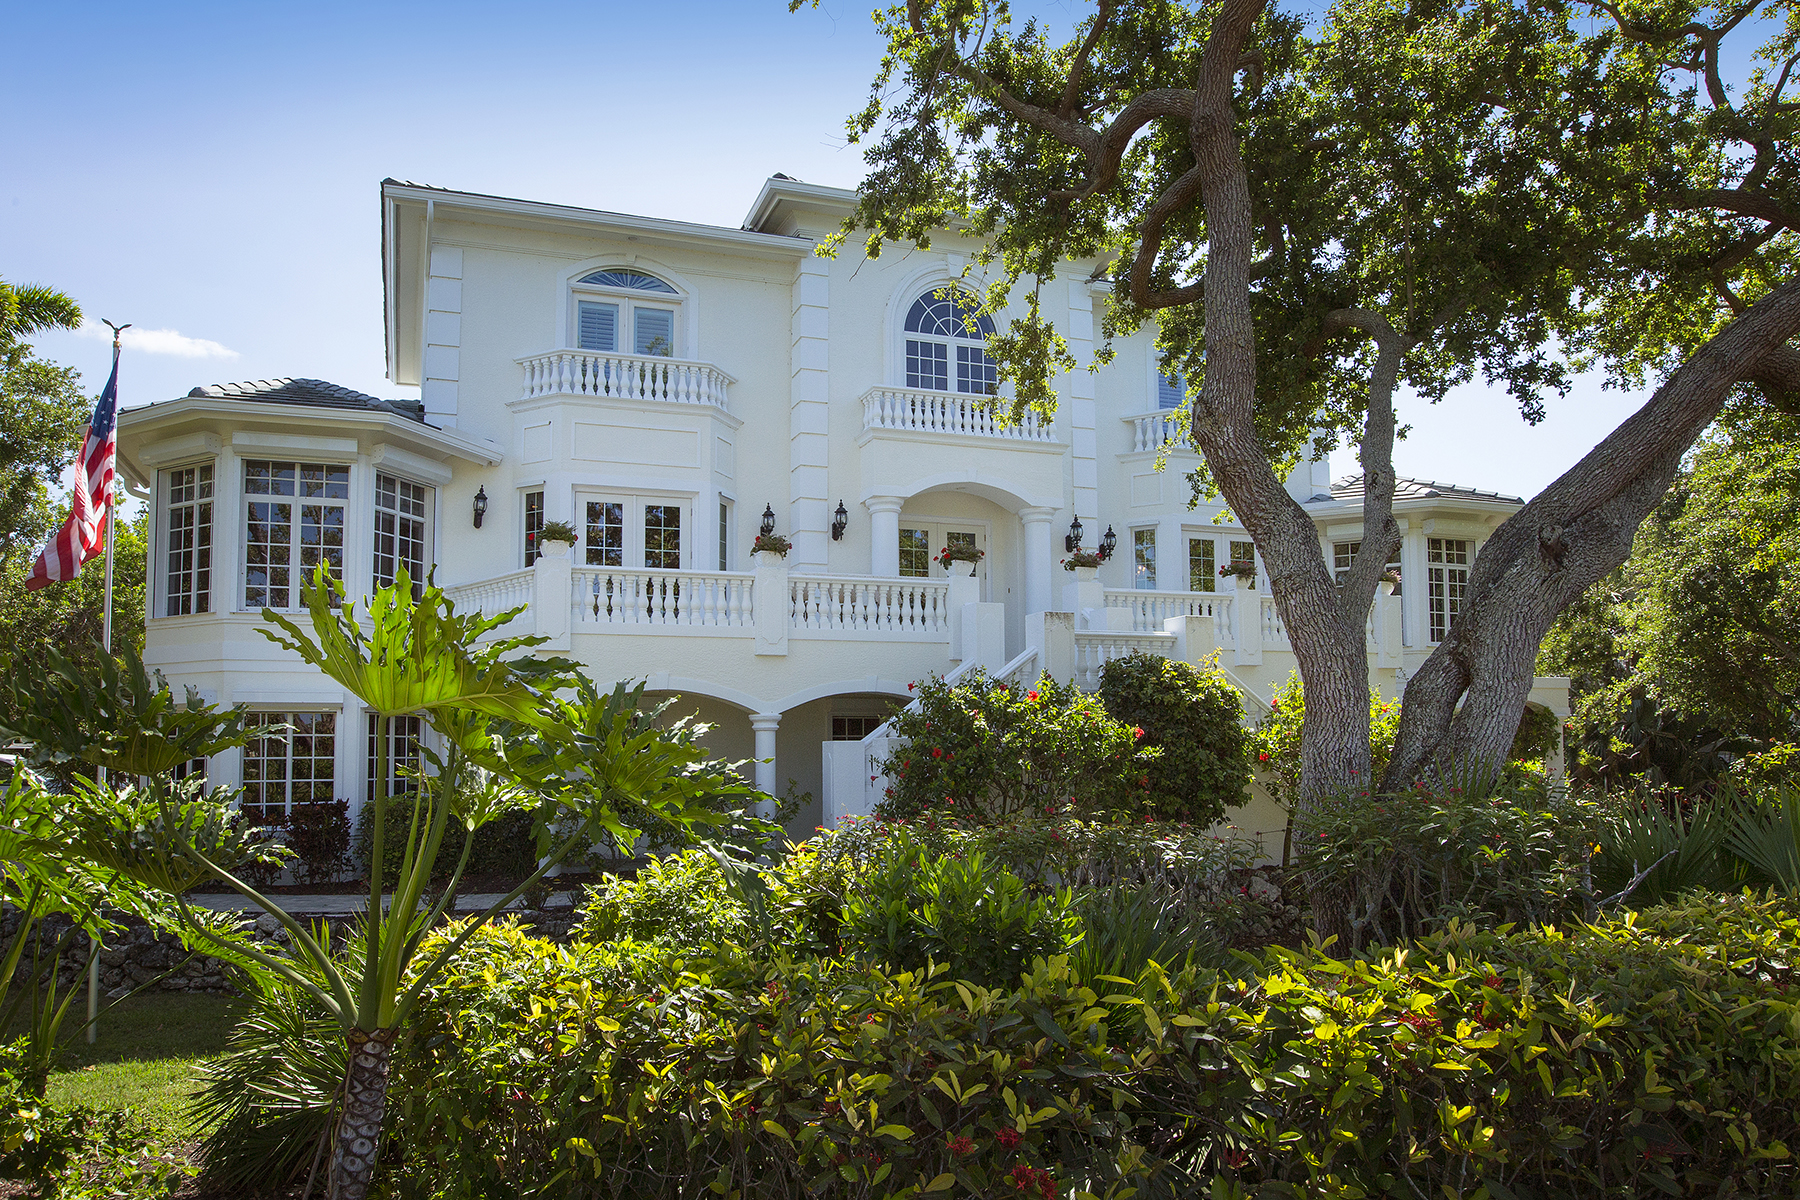 Single Family Home for Sale at HIDEAWAY BEACH 357 Morning Glory Ln, Marco Island, Florida 34145 United States